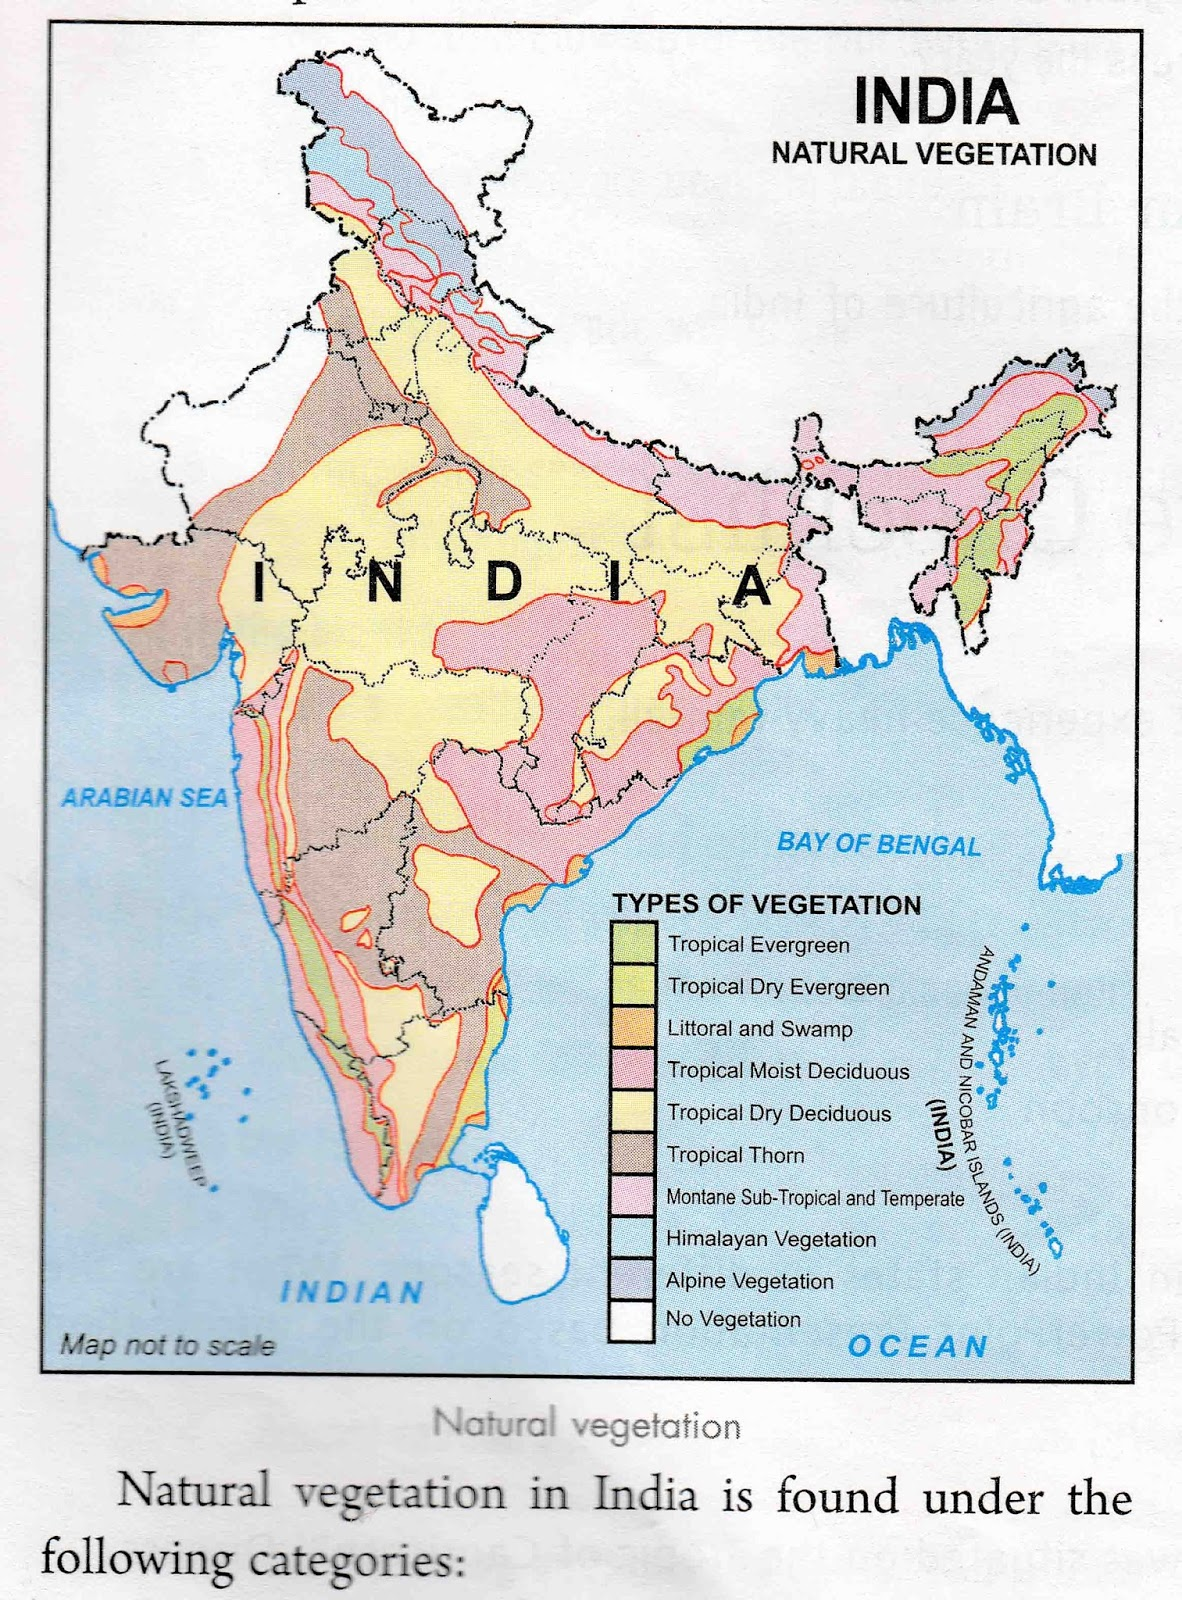 Important Industries in India Map 1. Automobile Industries 2 ... on map of india islands, map of india china, map of india maps, map of india tigers, map of india architecture, map of india politics, map of india cattle, map of india rivers, map of india independence, map of india parks, map of india jungles, map of india range, map of india history, map of india africa, map of india natural resources, map of india landscape, map of india food, map of india waterways, map of india states, map of india sea,